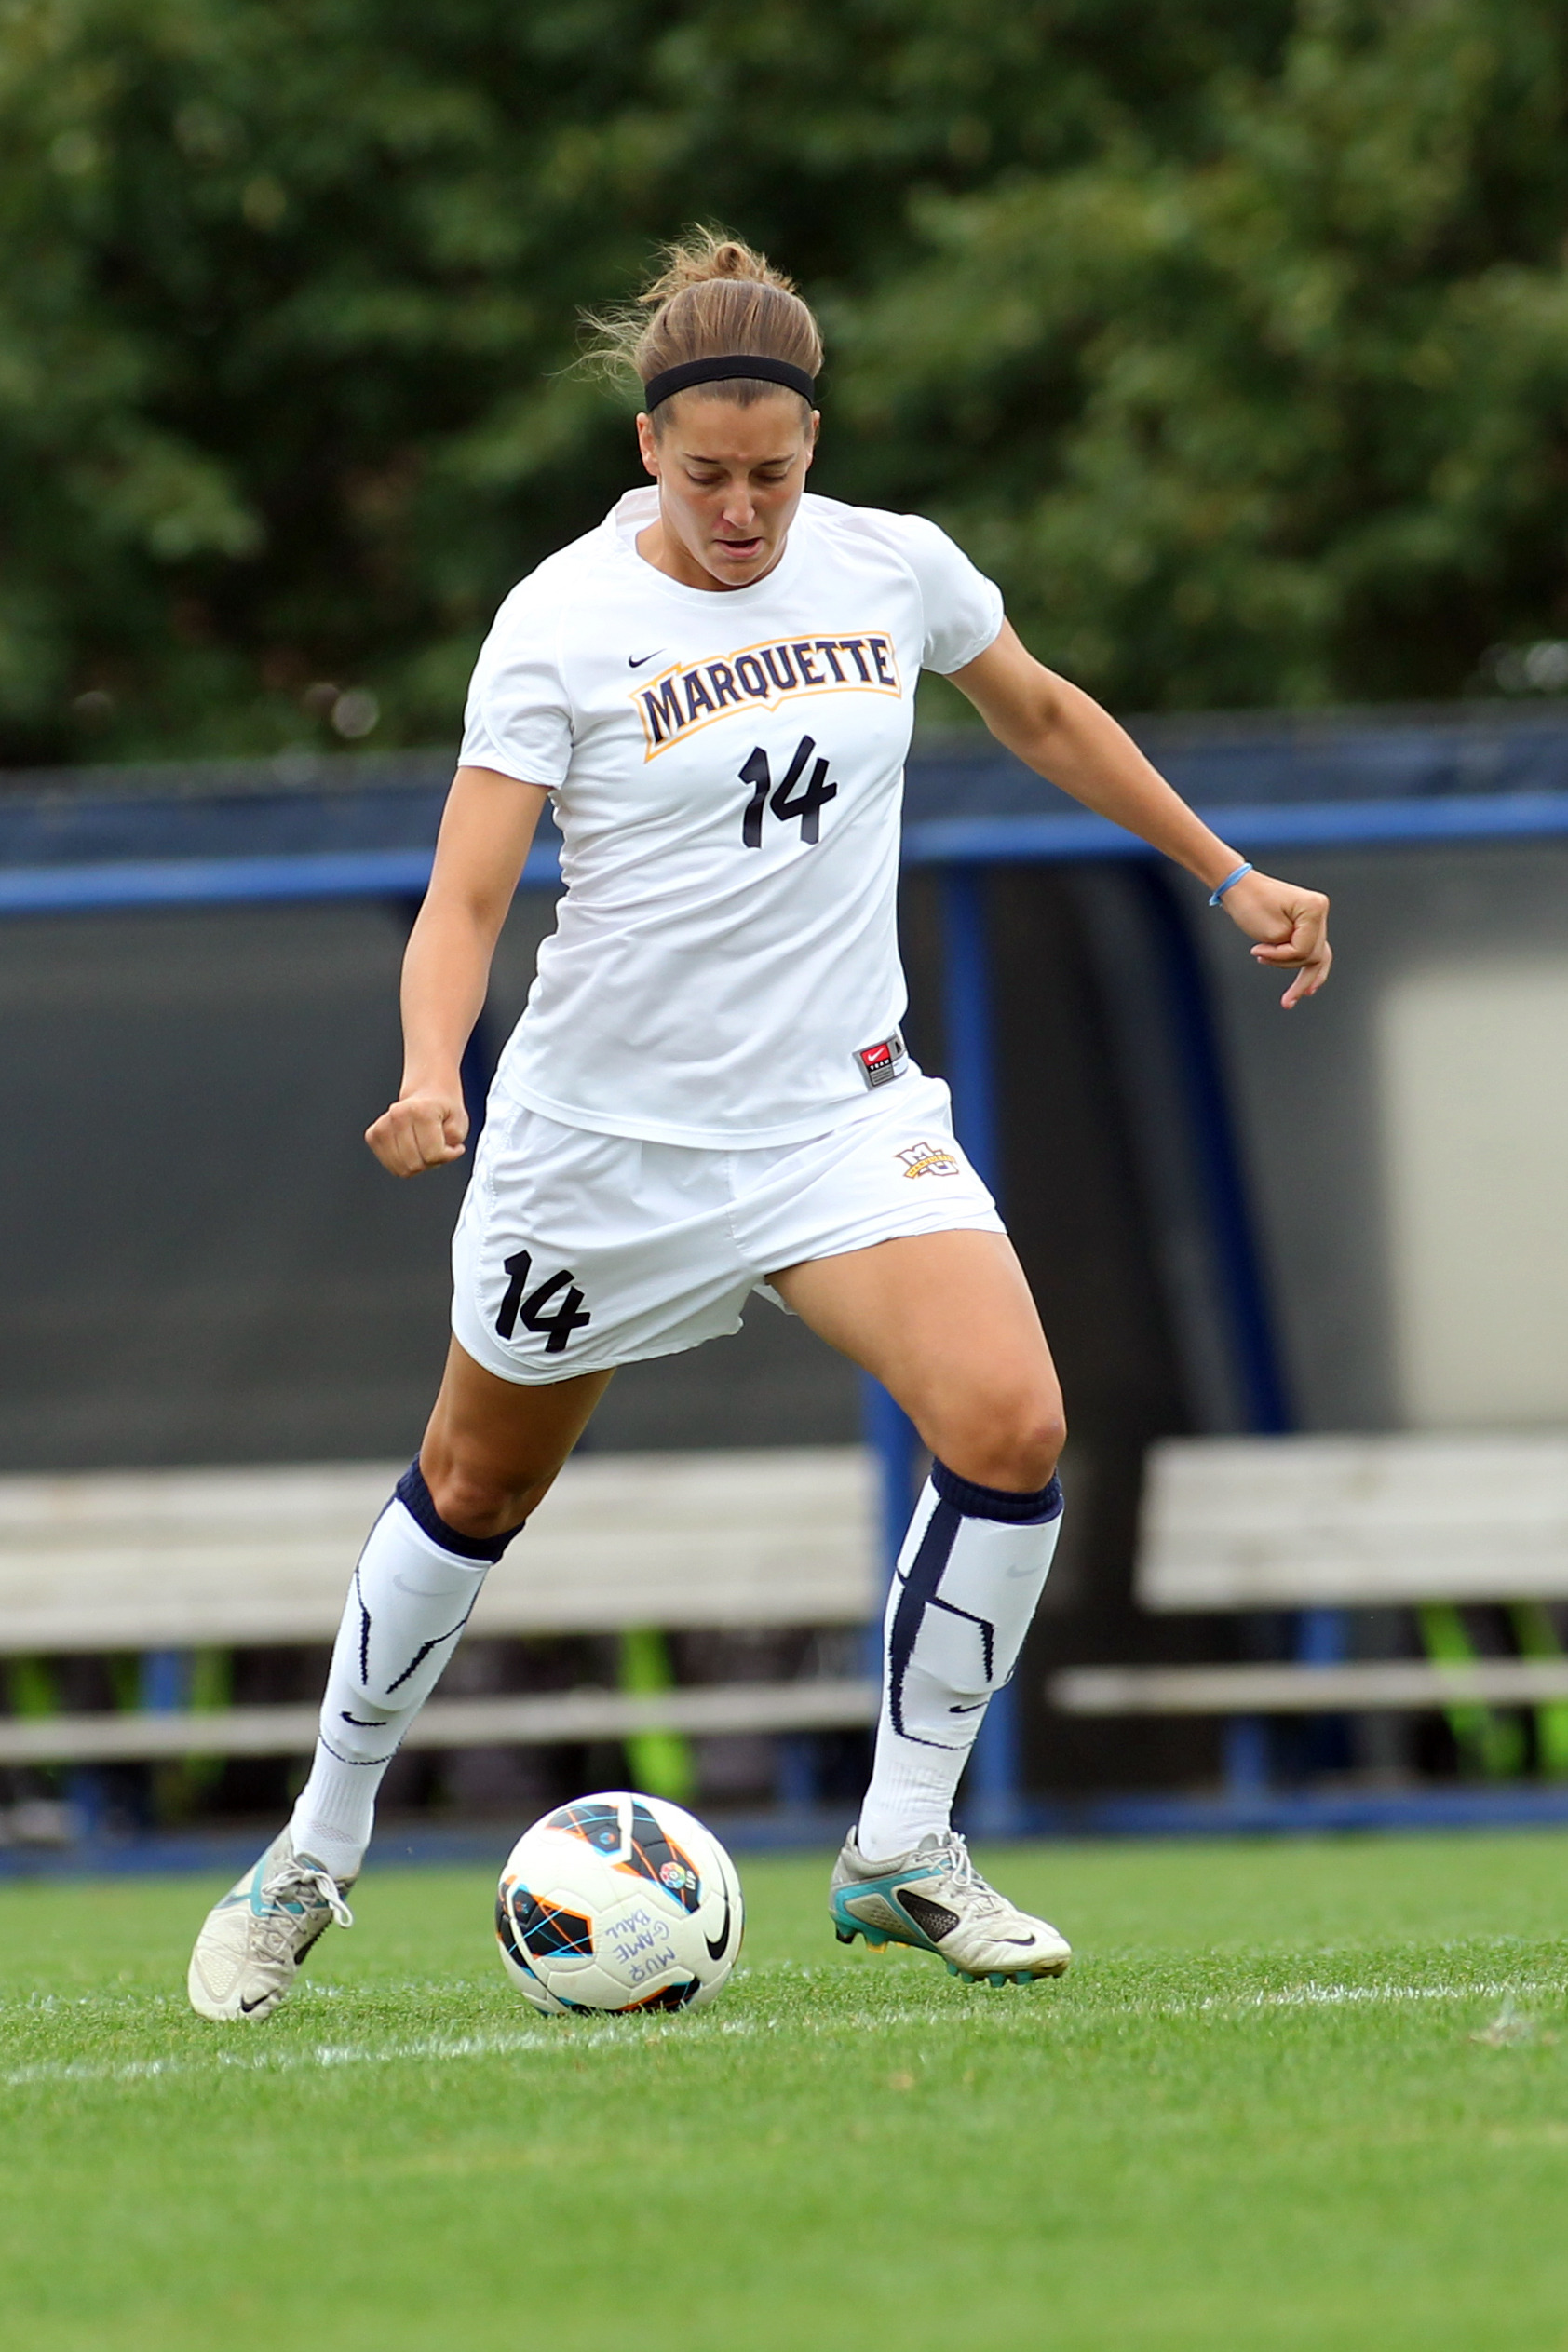 Alex Heffron recorded one goal and one assist in victory over Providence.